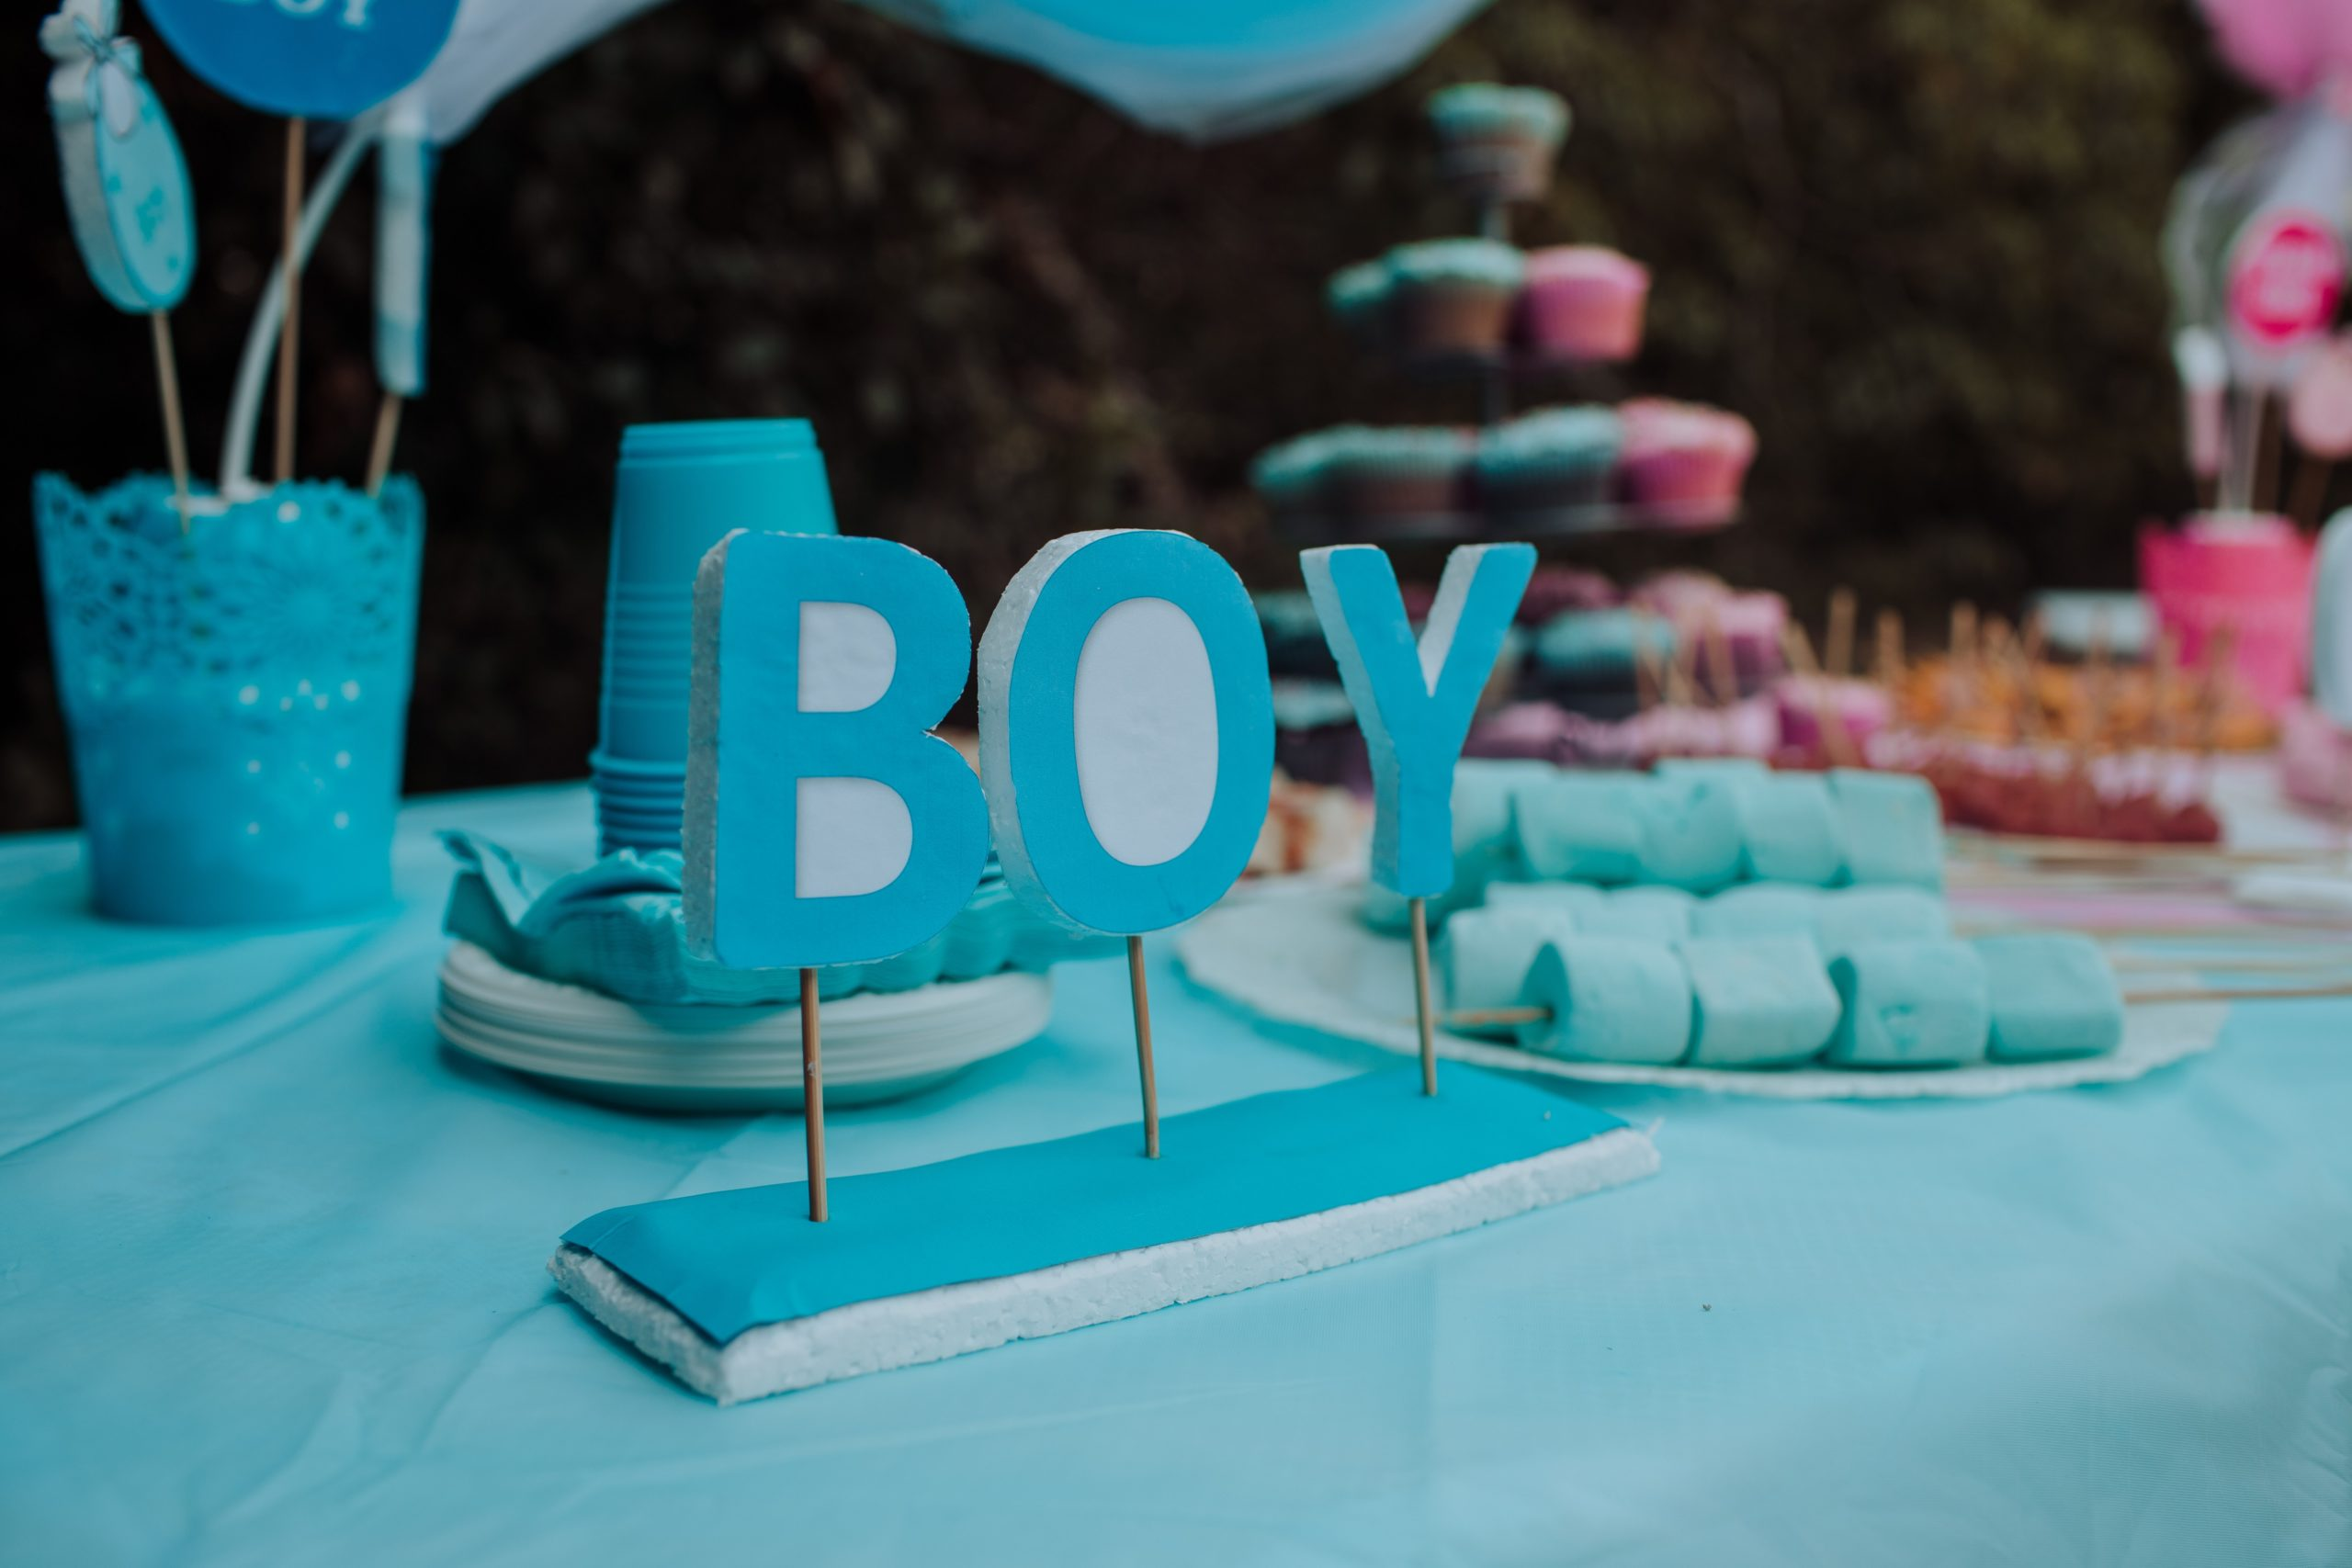 Baby Shower Ideas to Host Amazing Party for the Mom-to-Be